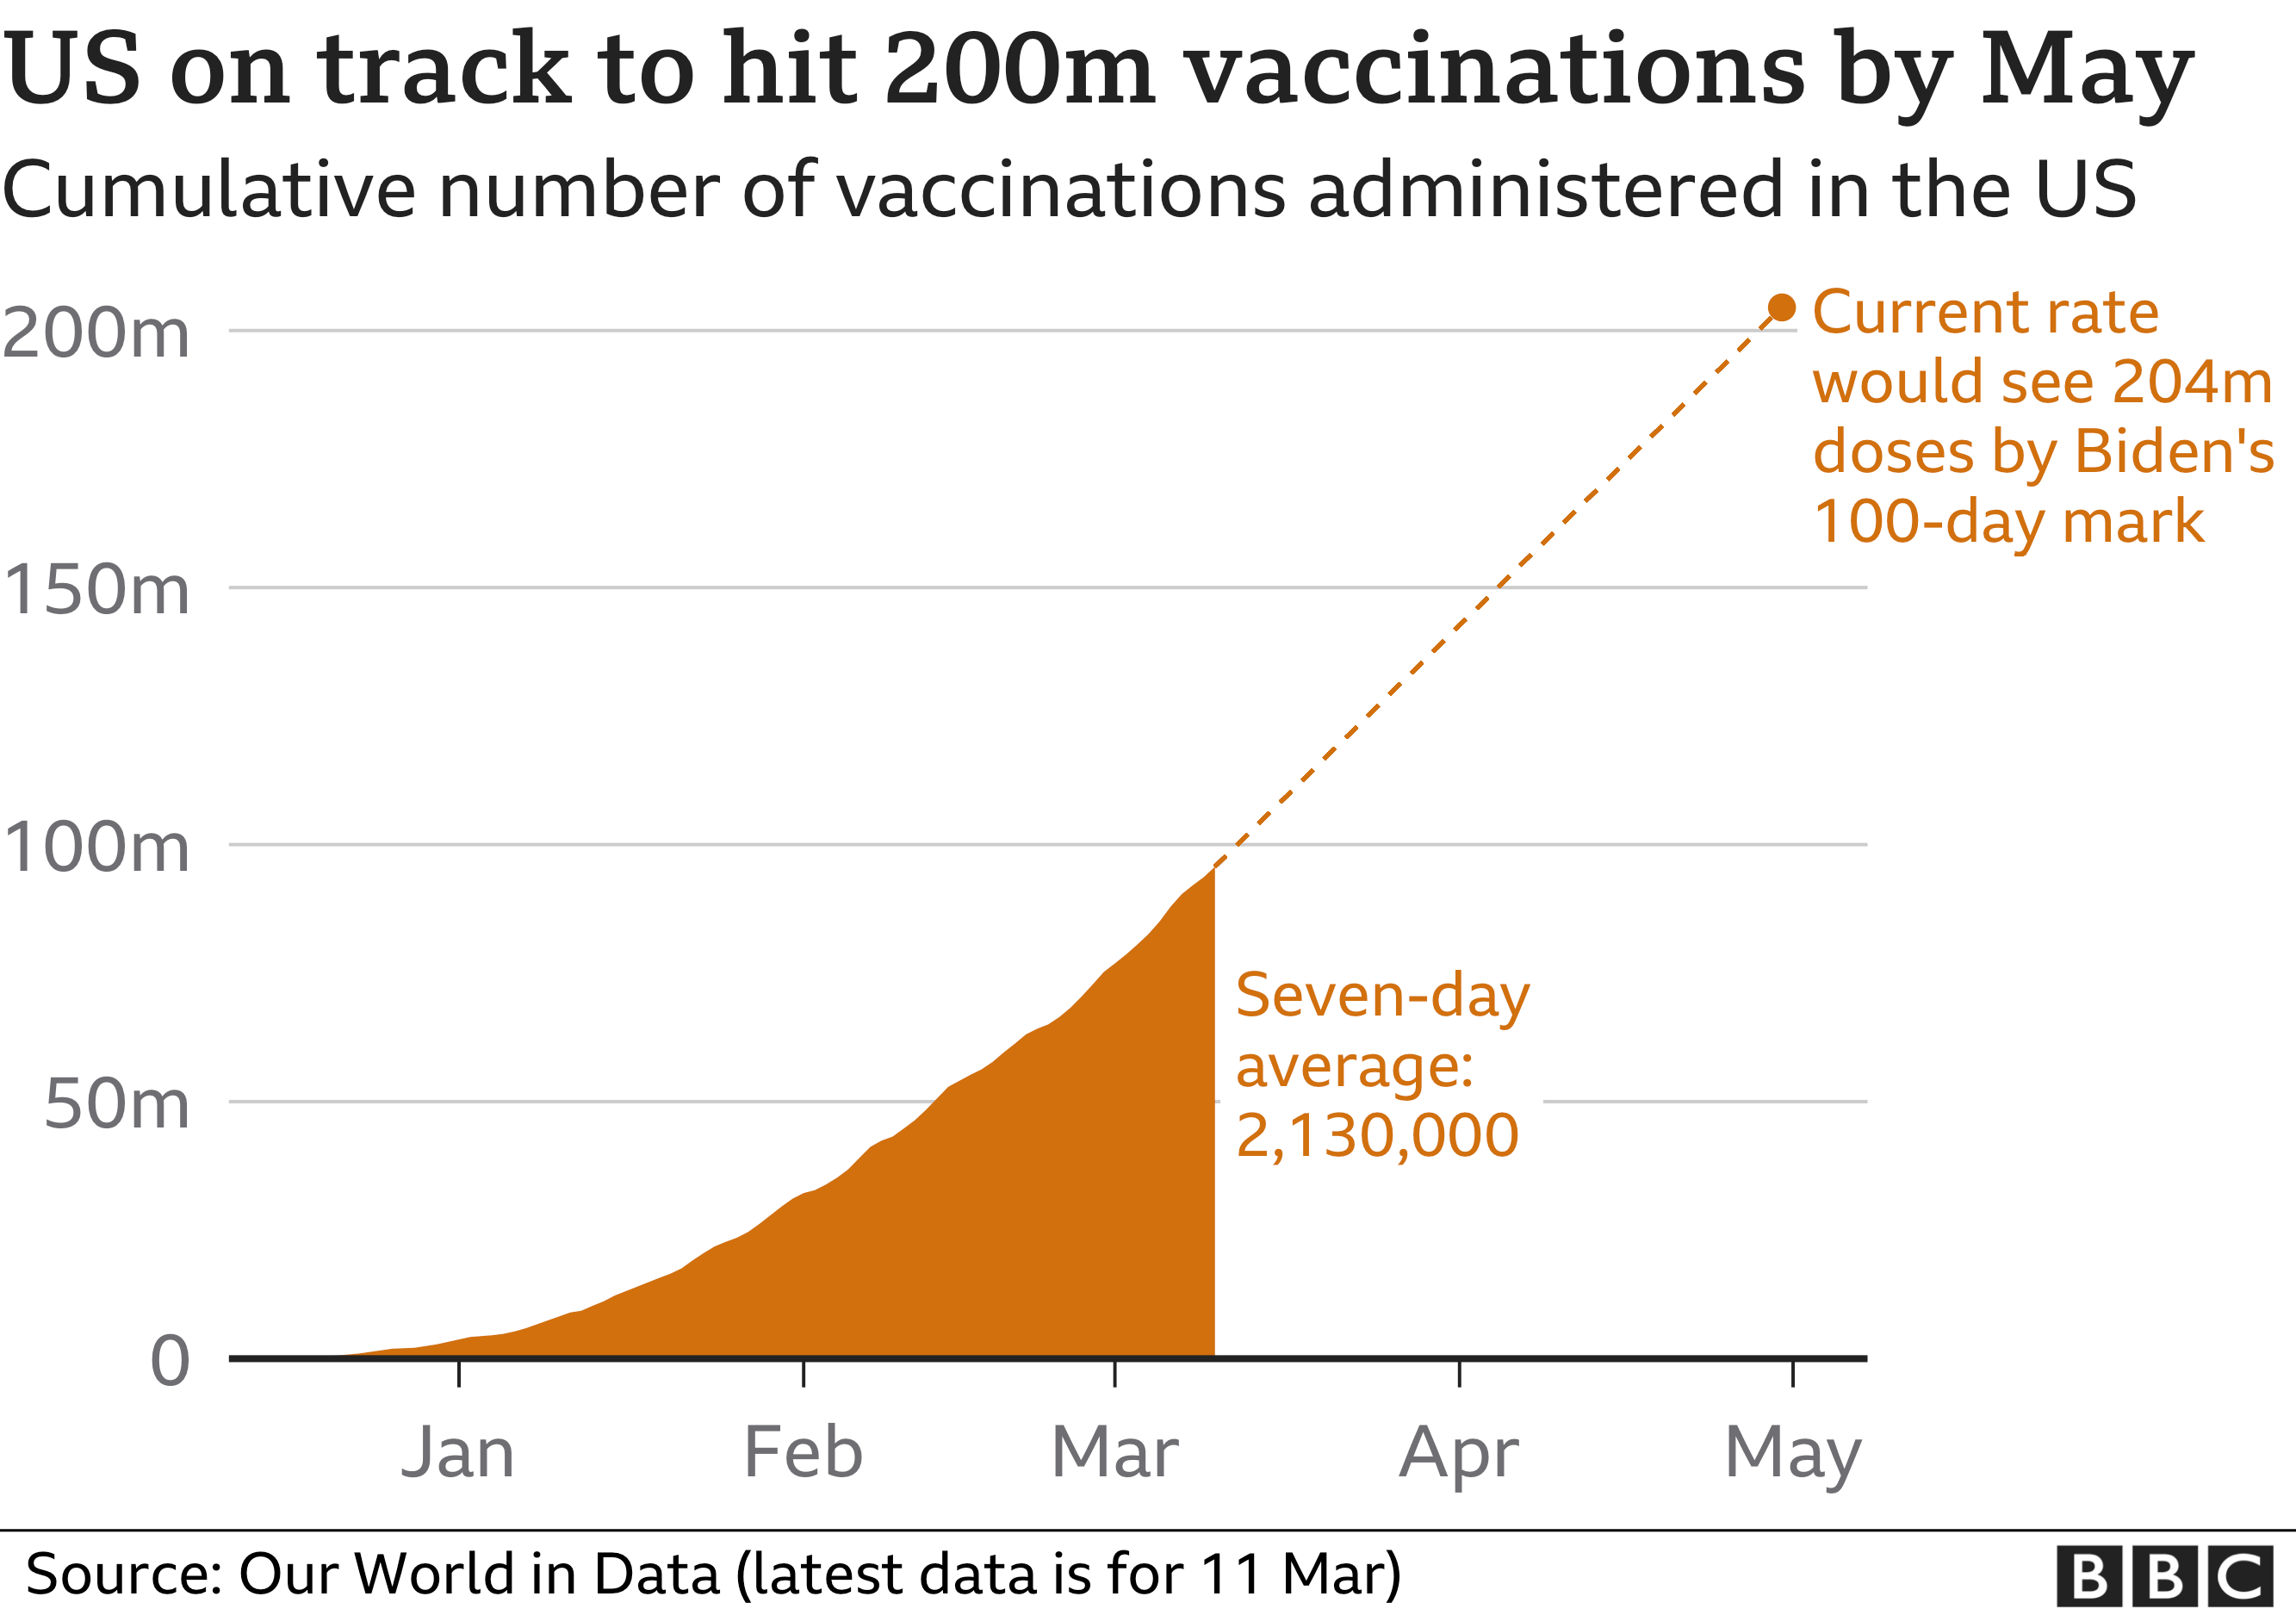 US vaccination figures. Updated 12 March